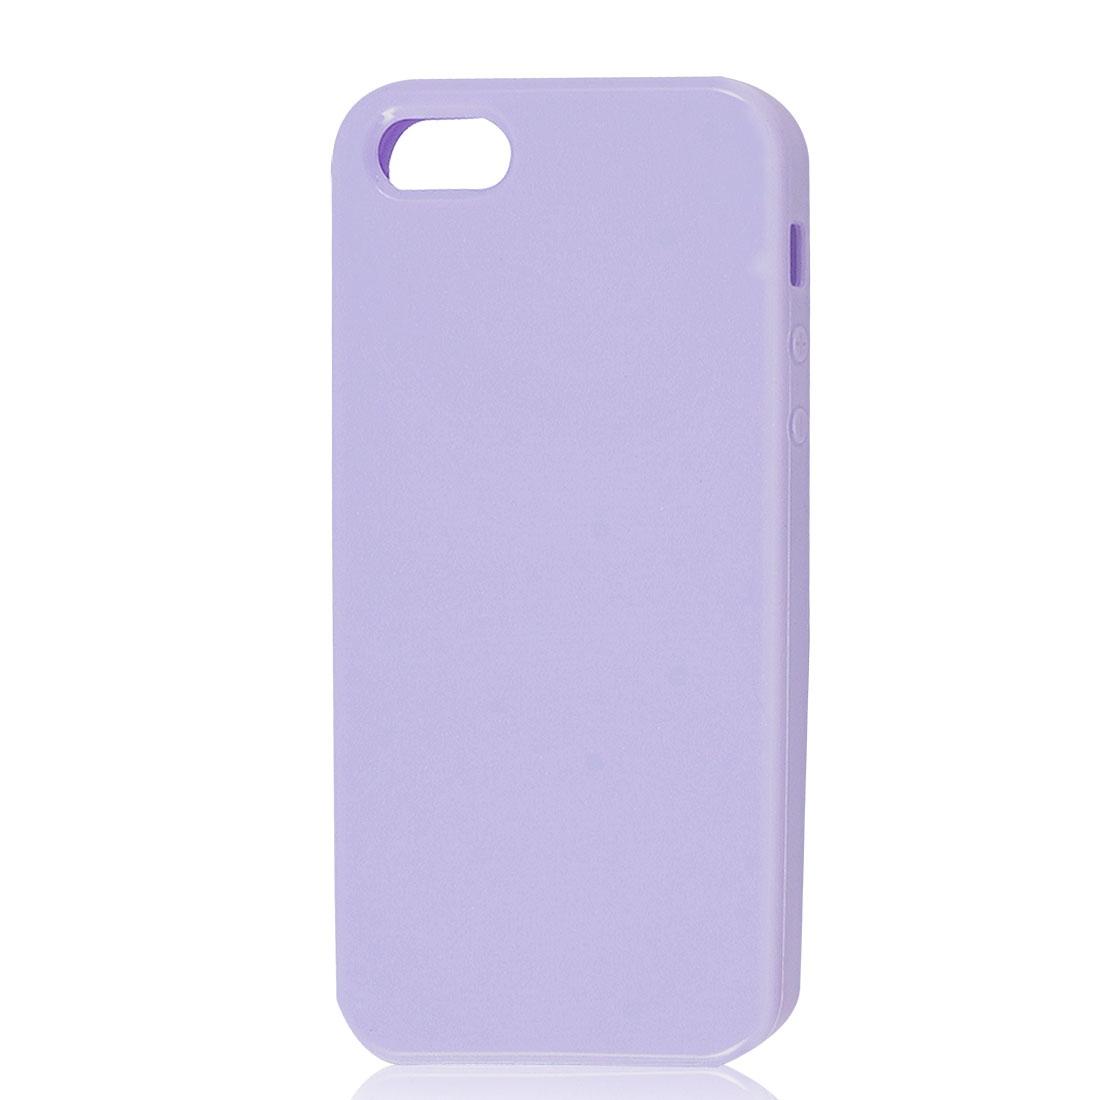 Light Purple Soft Plastic TPU Protective Case Cover Skin for Apple iPhone 5 5G